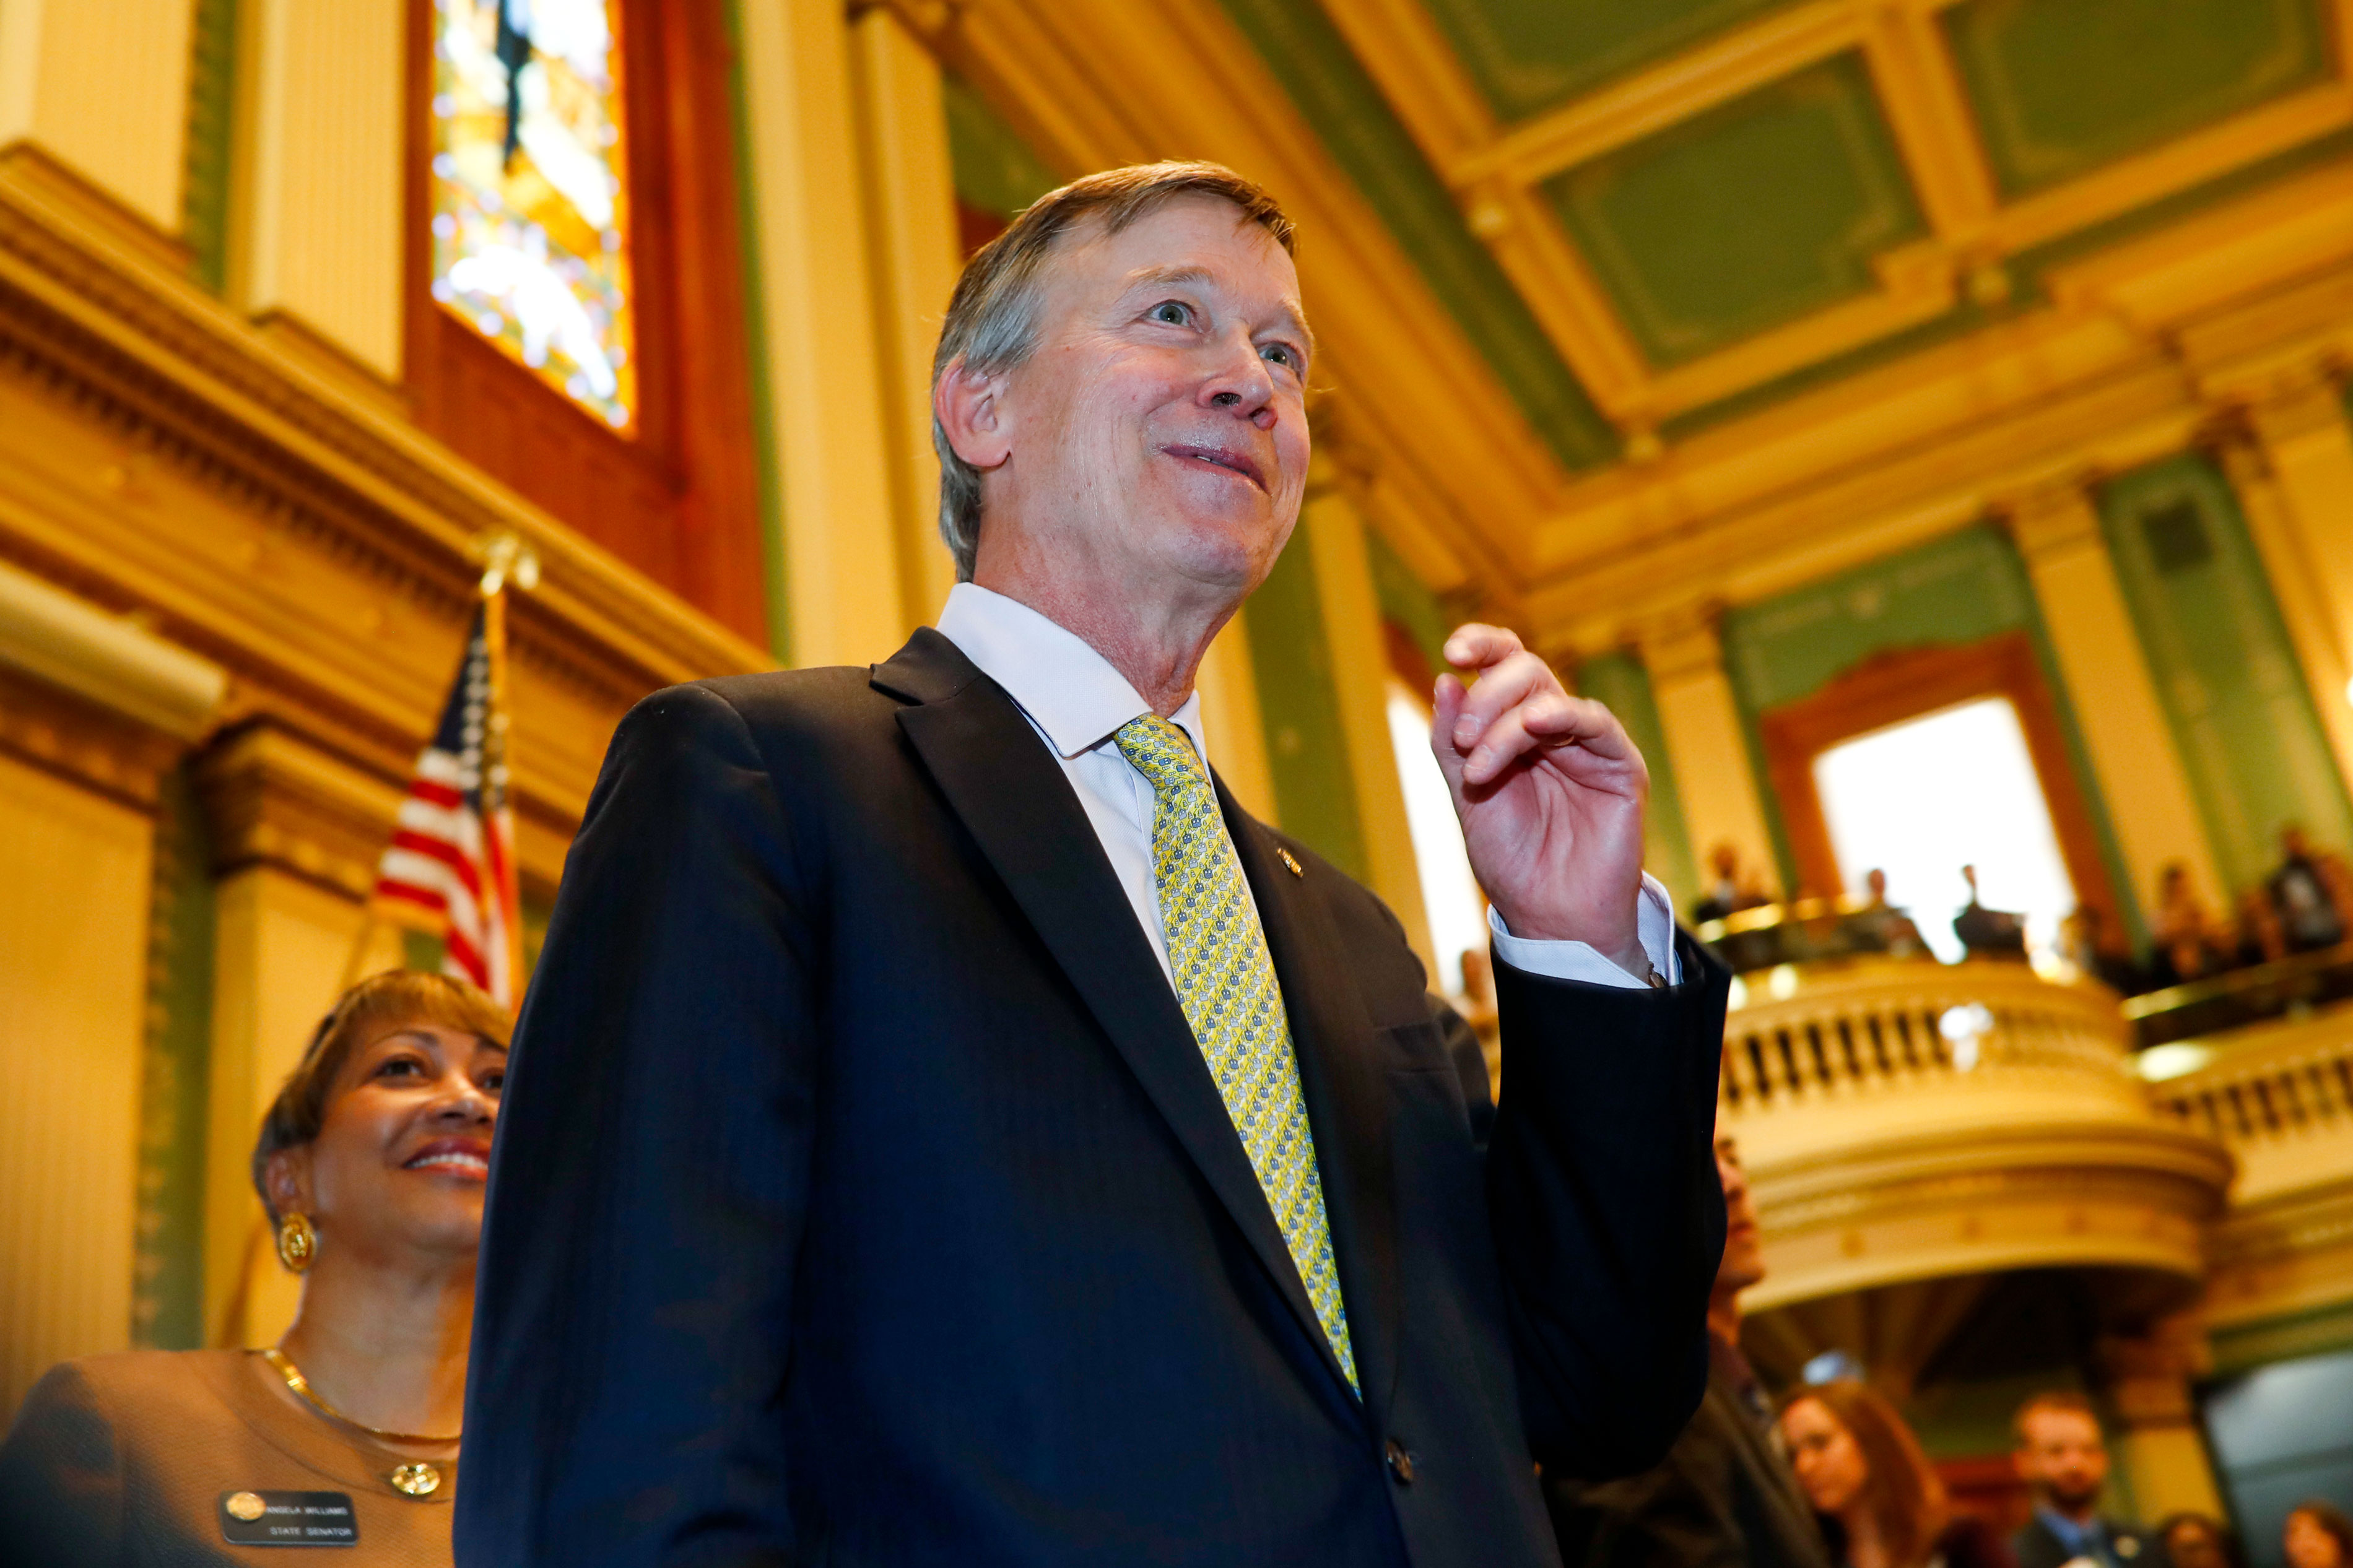 Photo: Colorado State Of The State 2018 - AP